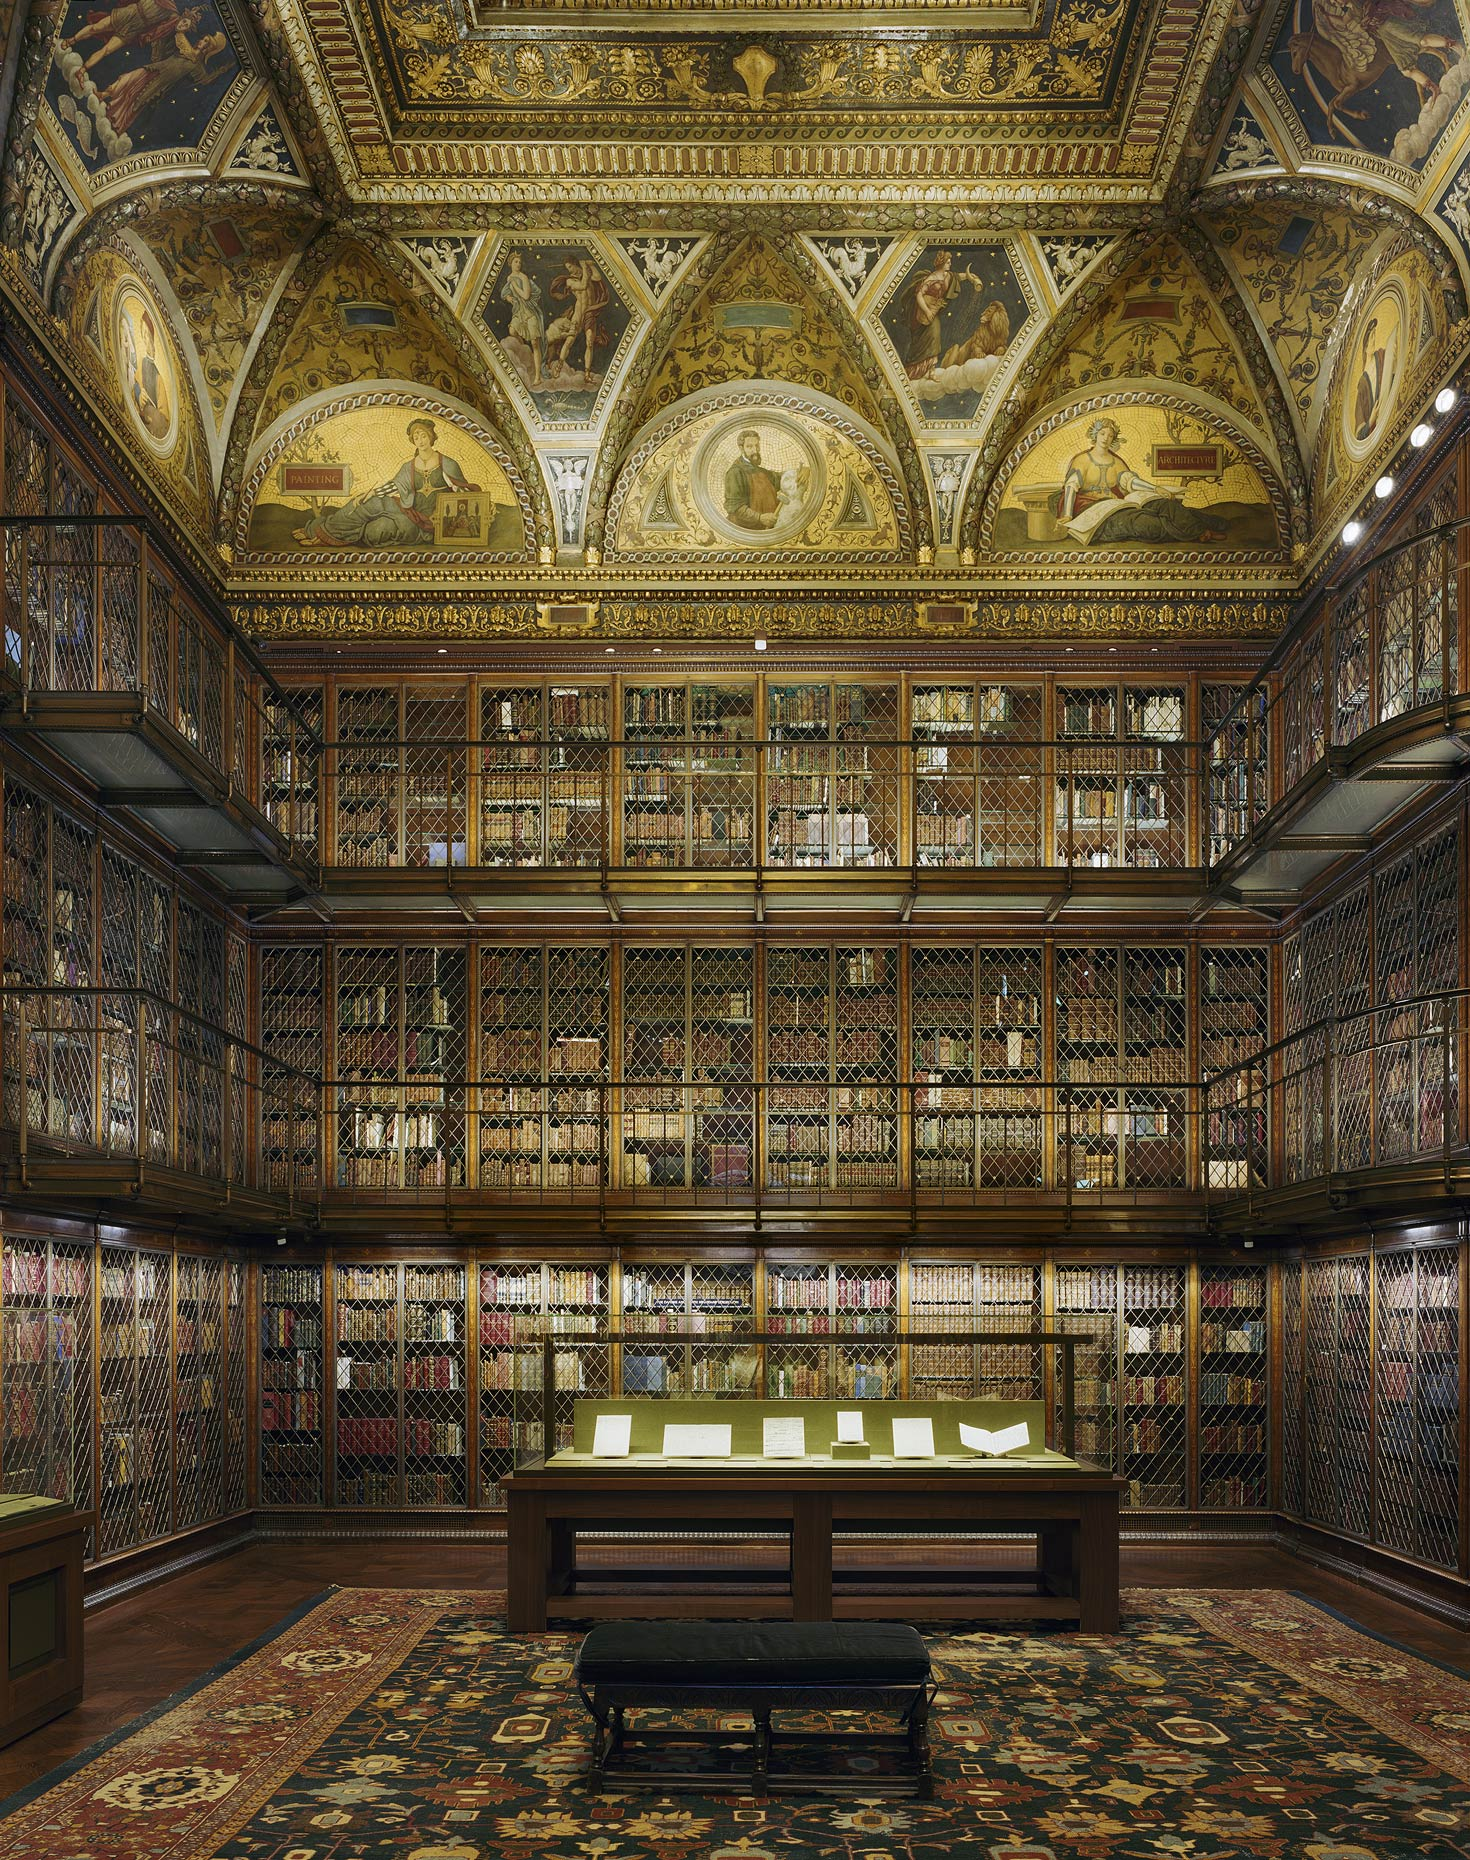 Morgan Library & Museum, 225 Madison Avenue, New York, New York